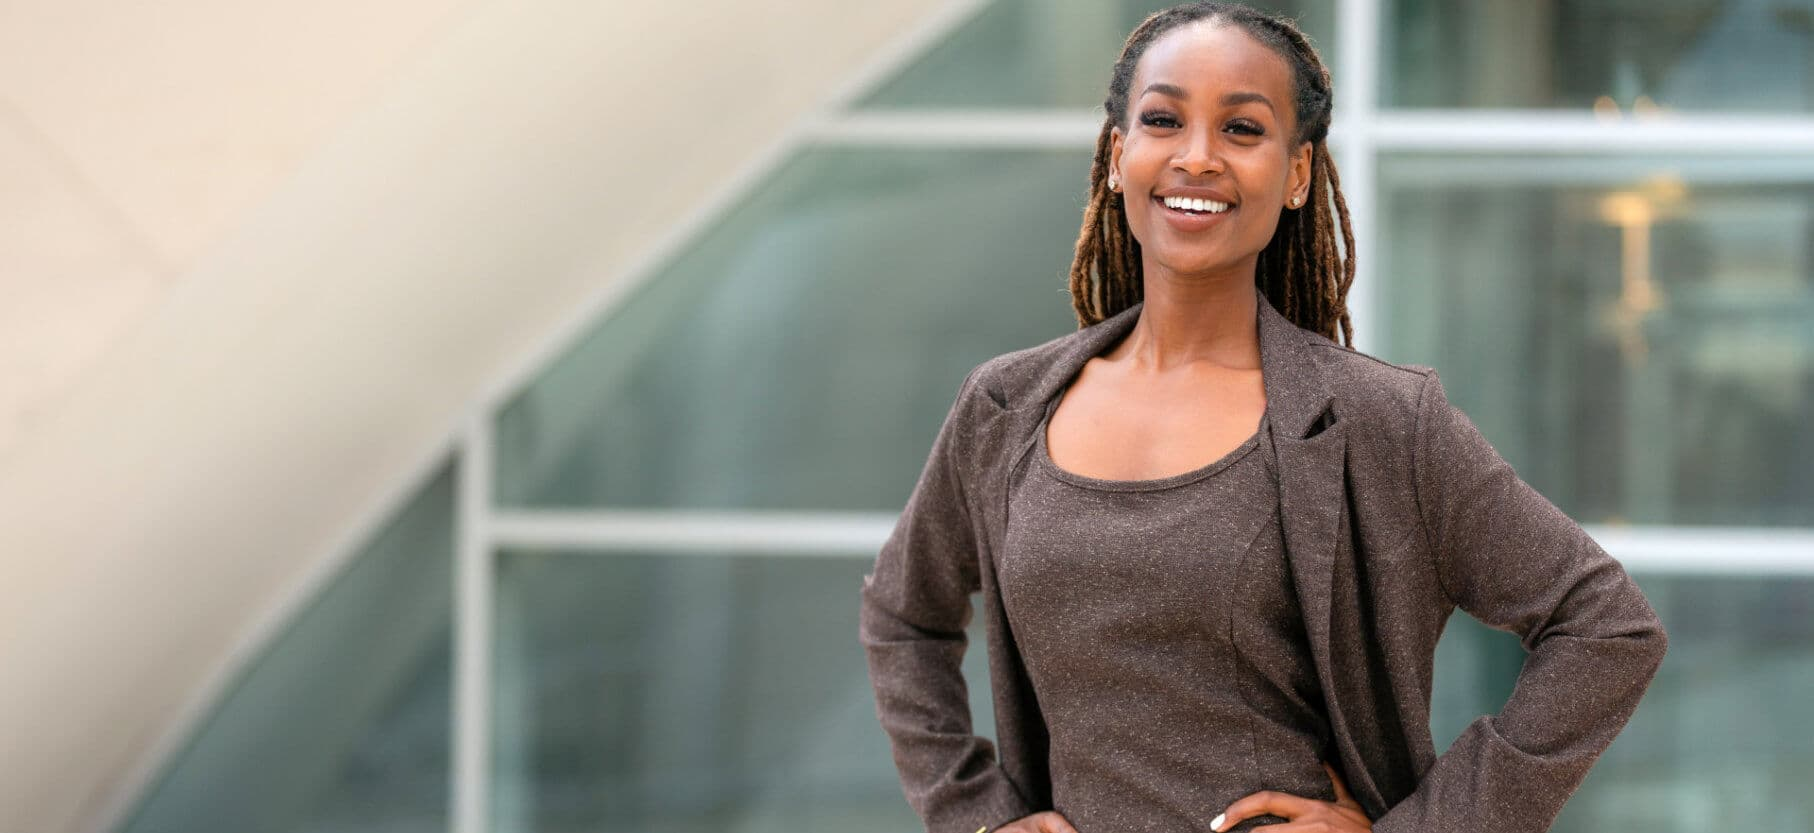 modern portrait of african american female business person